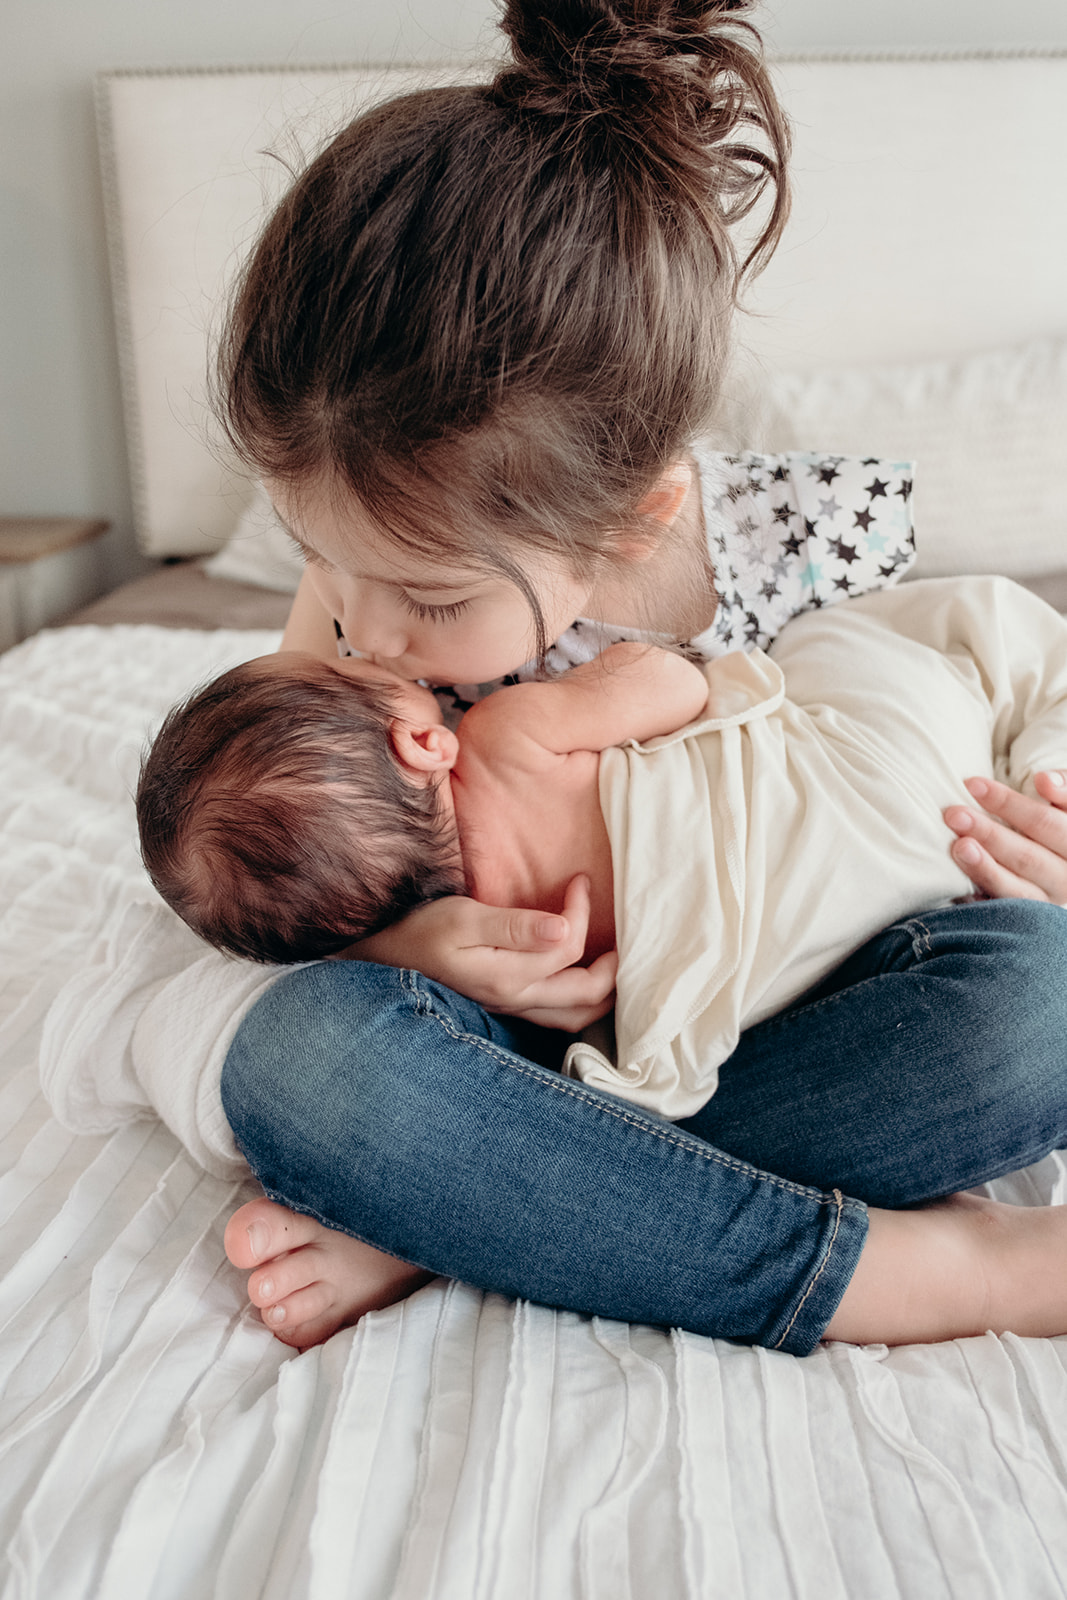 A little girl kisses her baby brother while she holds him on her lap during an in-home family photography session.